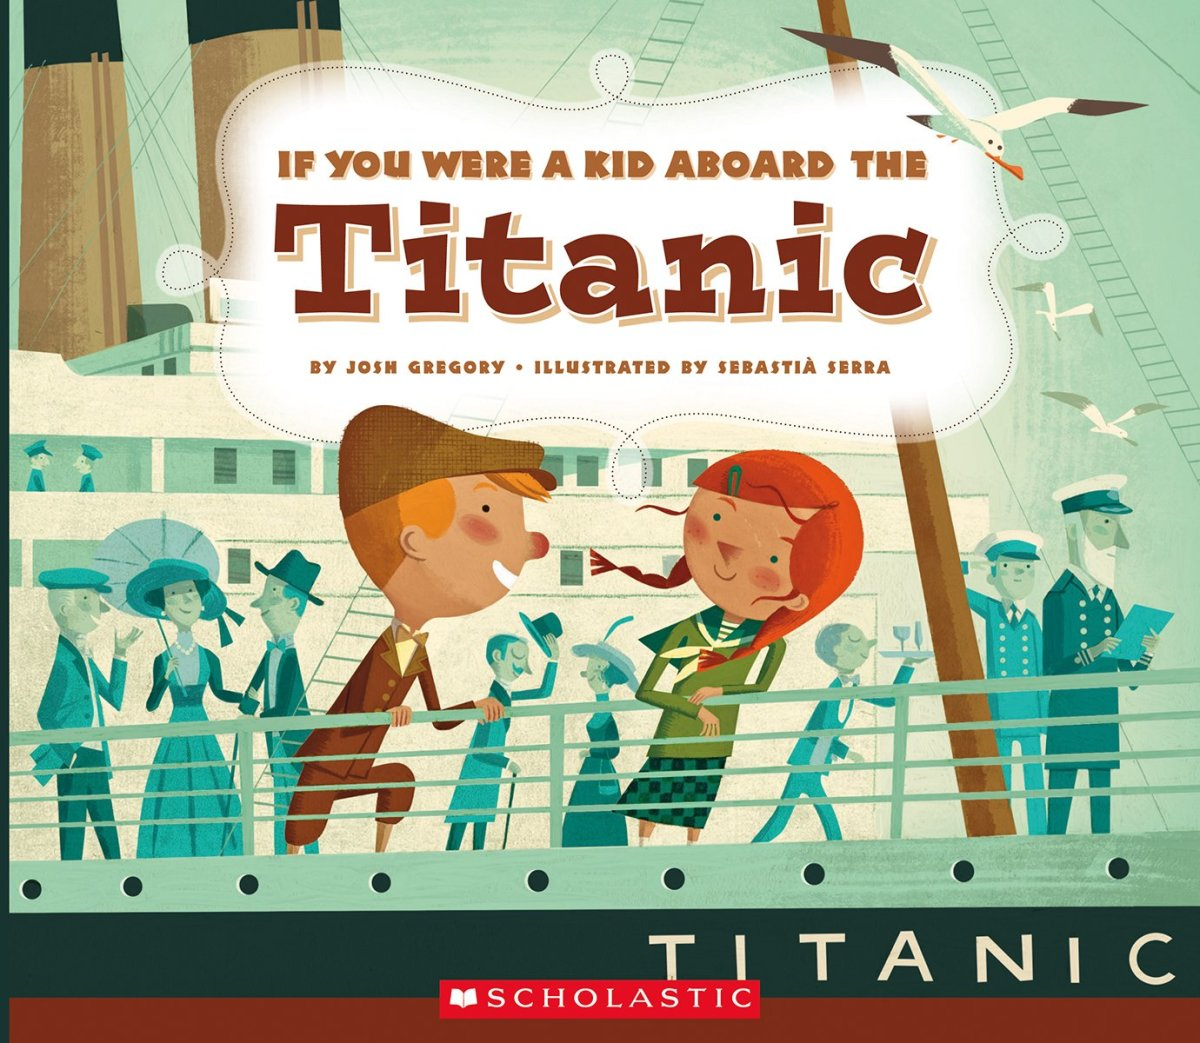 If You Were a Kid Aboard the Titanic by Josh Gregory